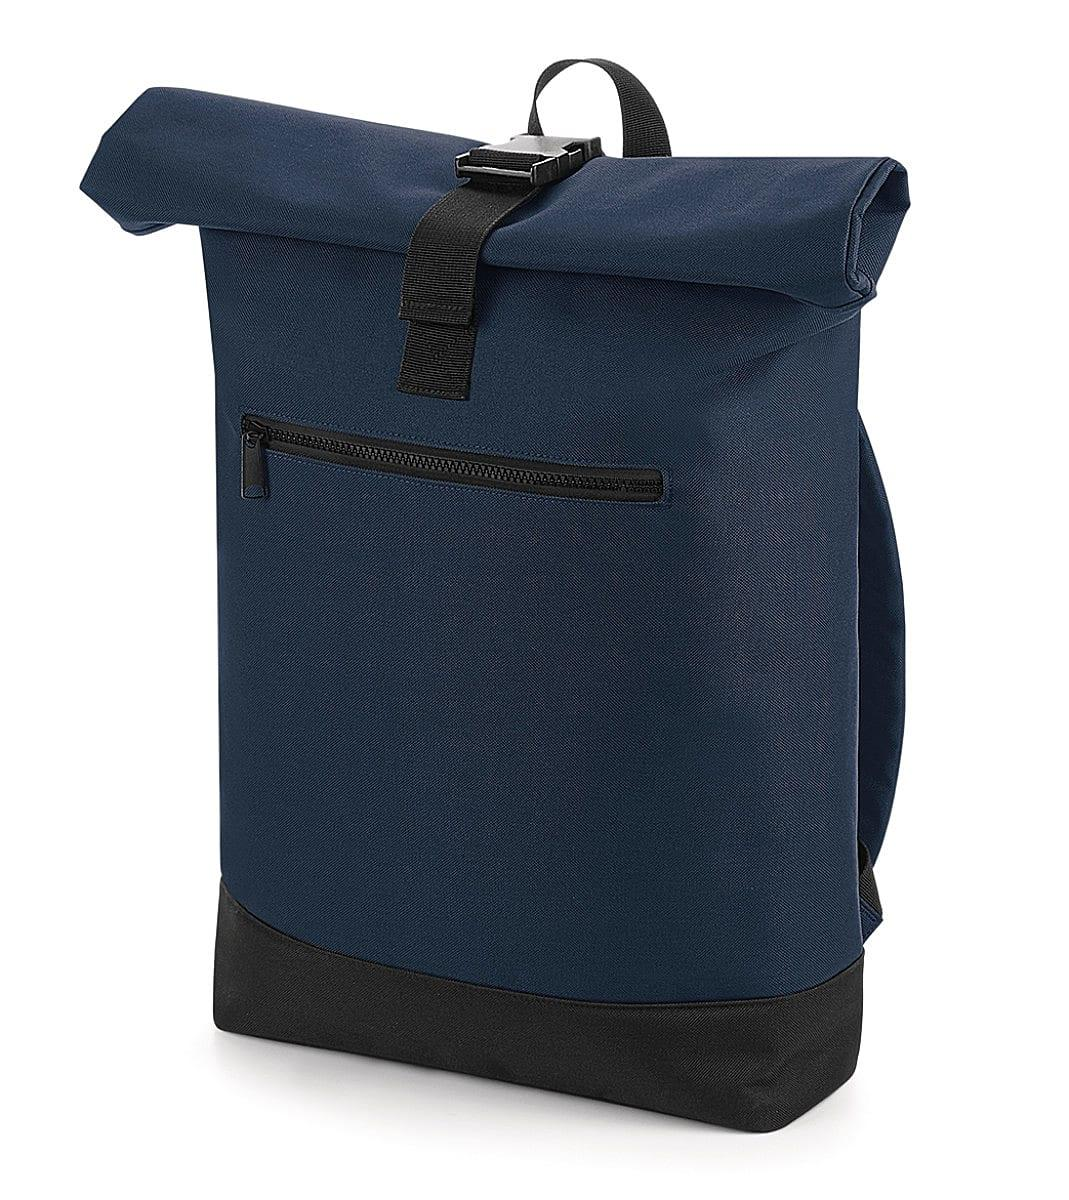 Bagbase Roll-Top Backpack in French Navy (Product Code: BG855)